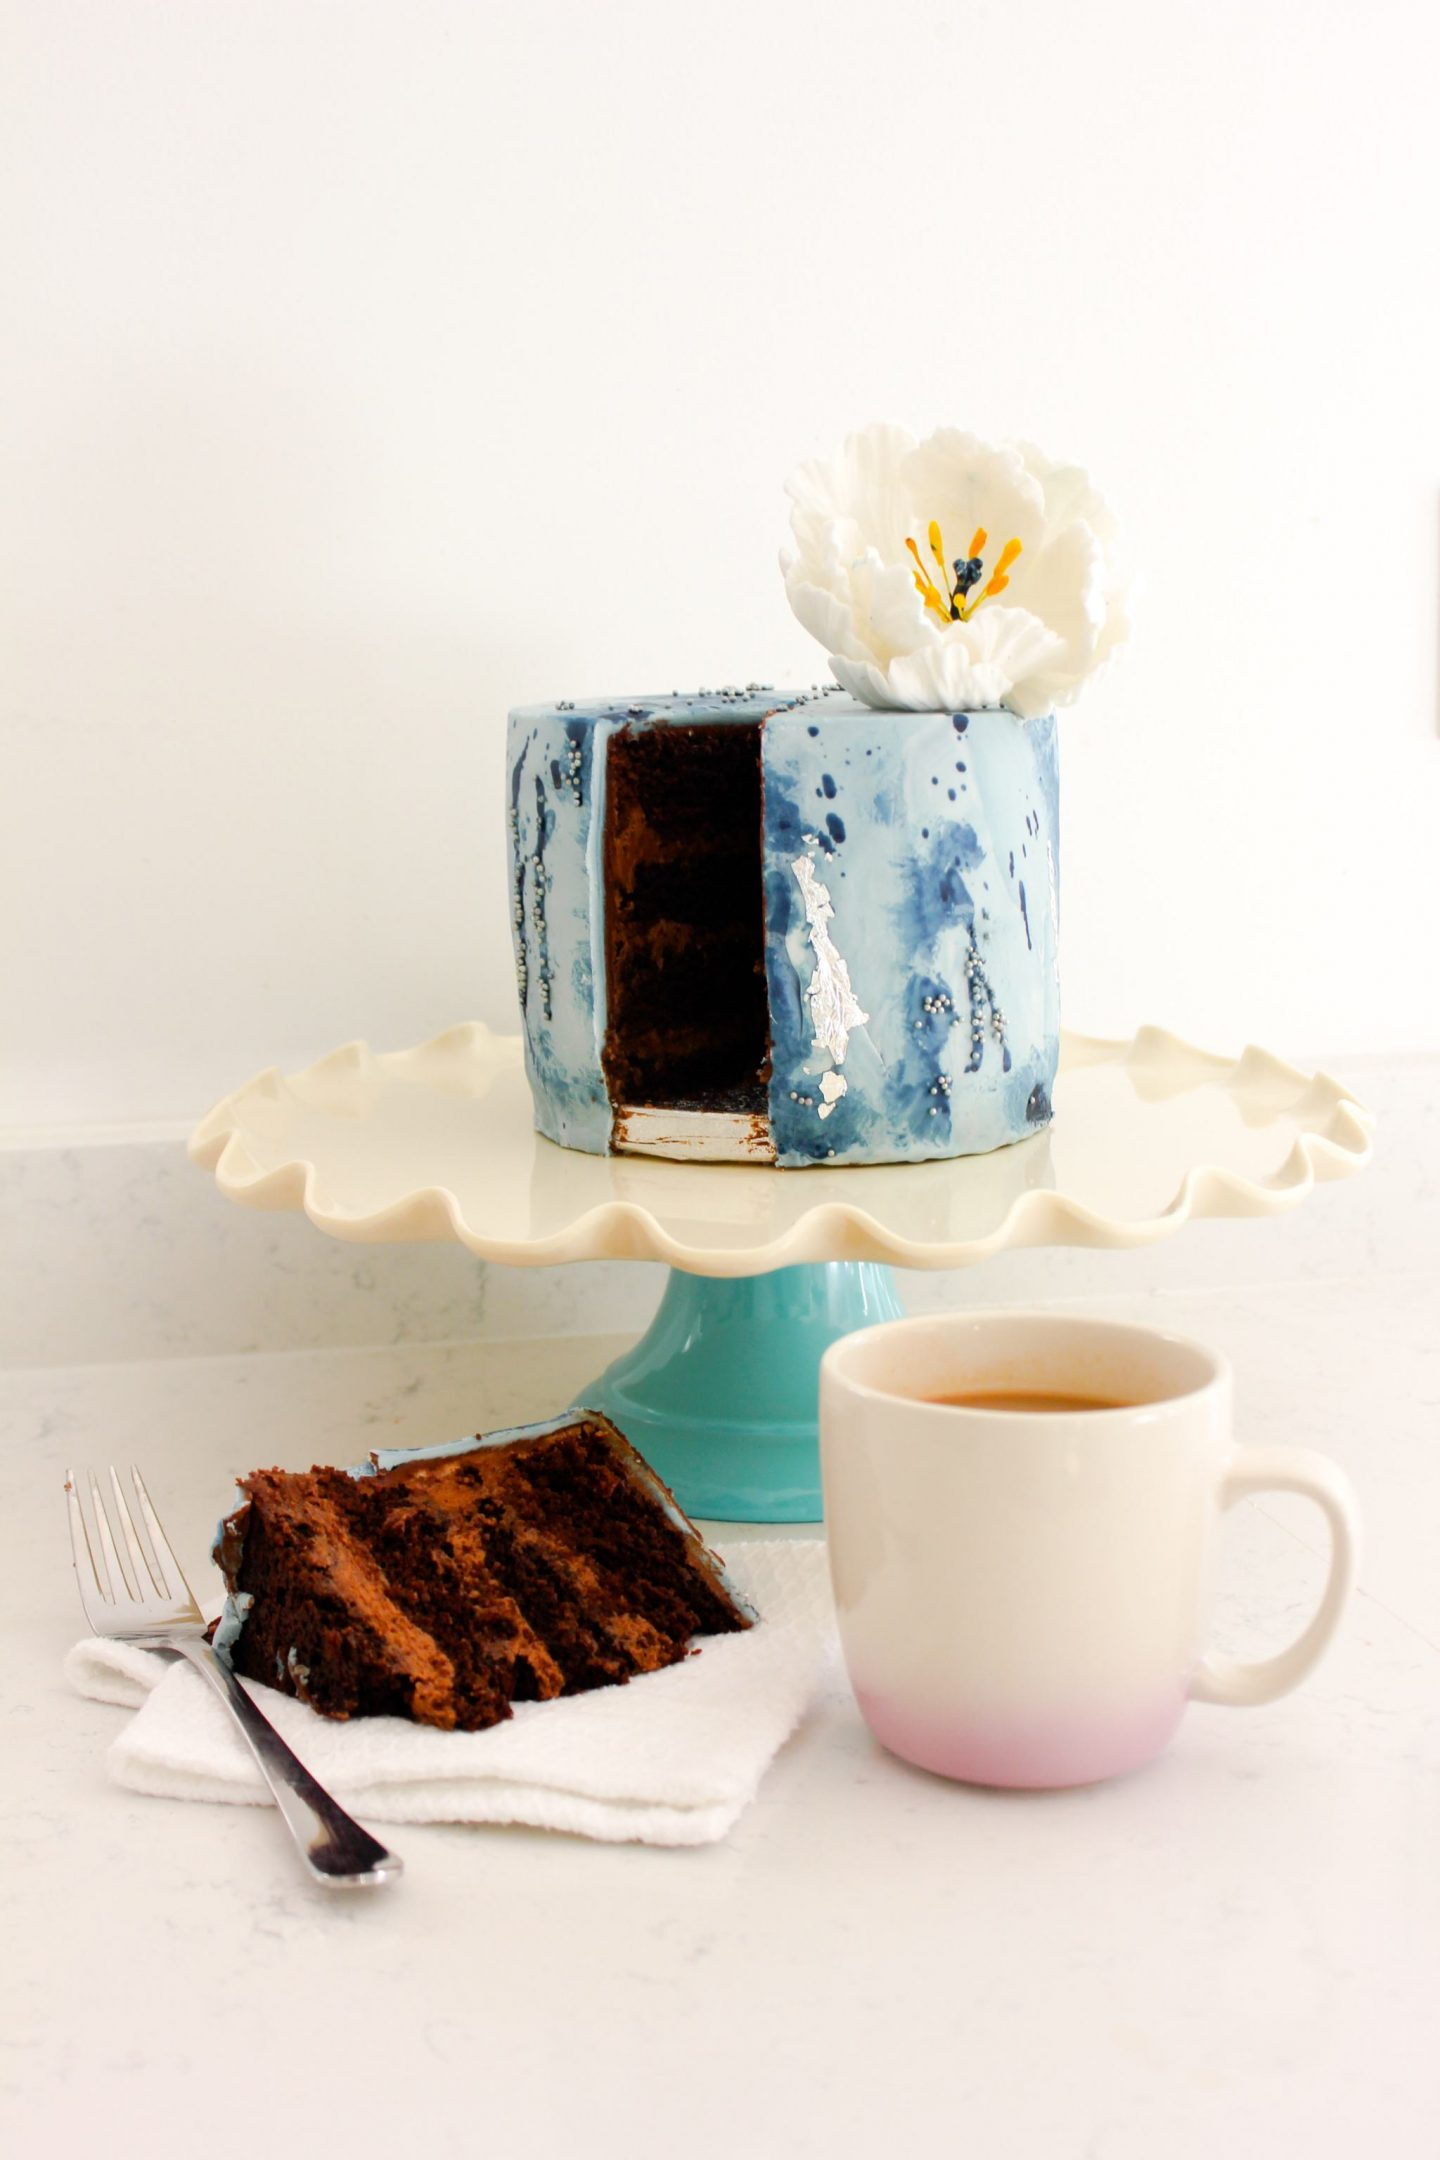 Great British Bake Off chocolate cake recipe